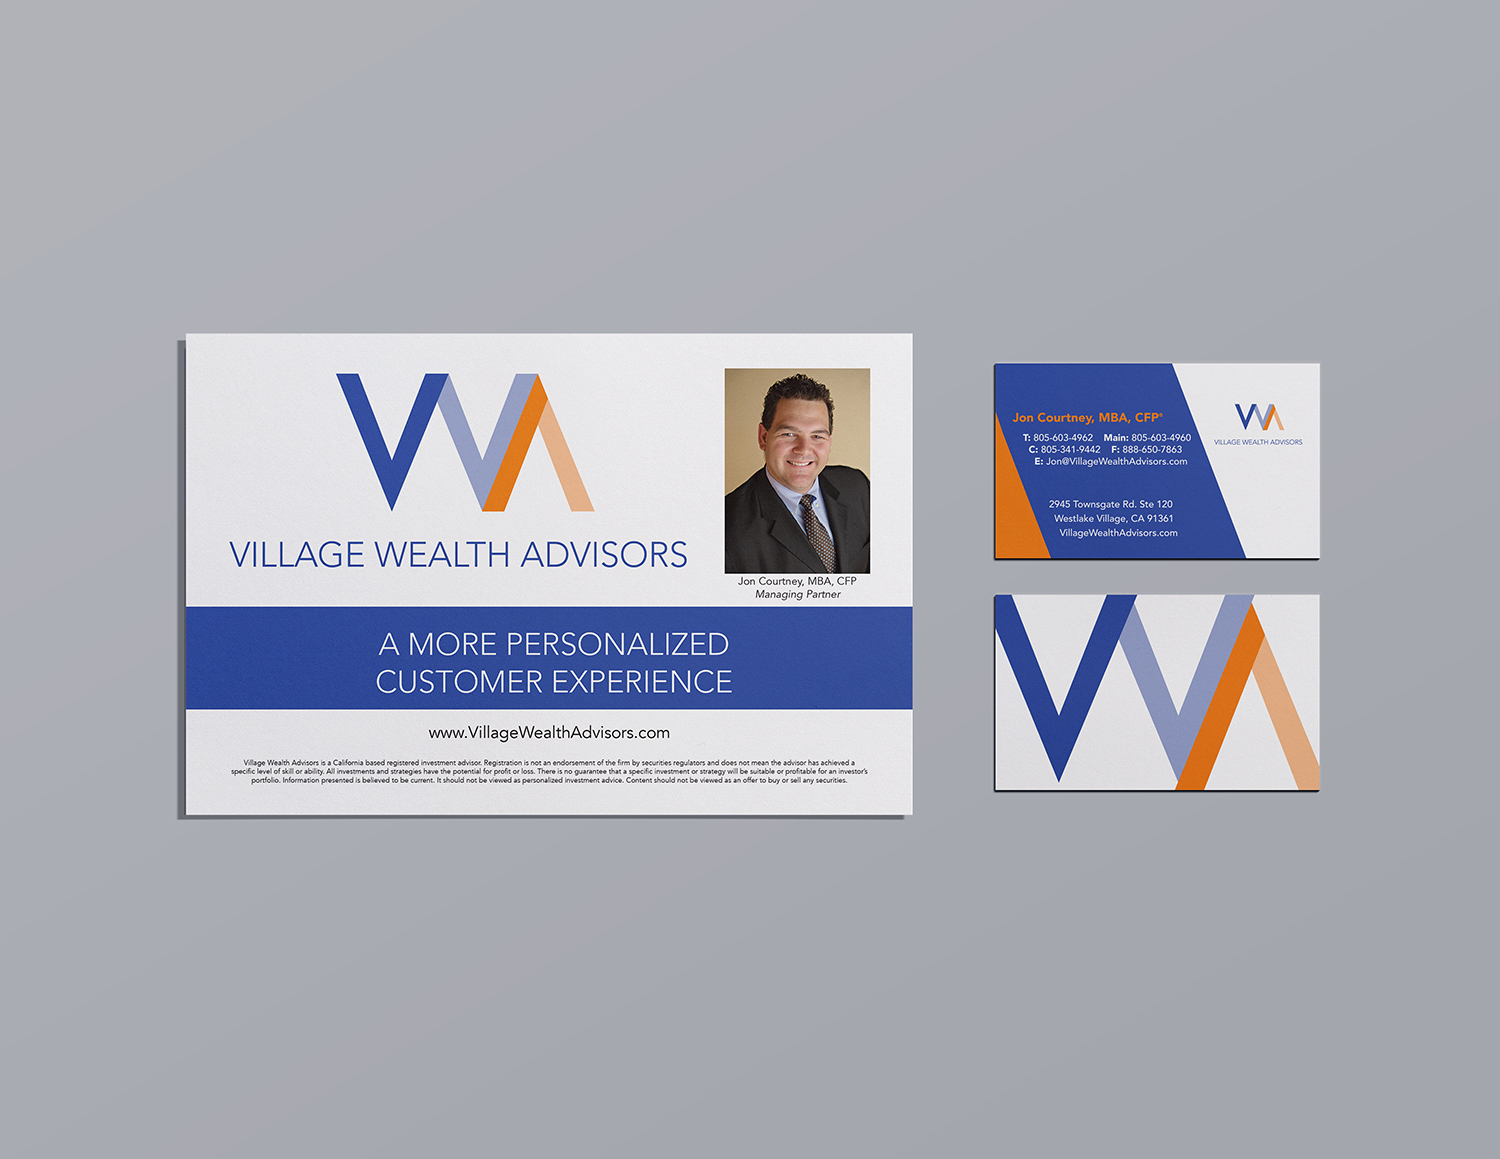 http://www.newmangrace.com/project/village-wealth-advisors/